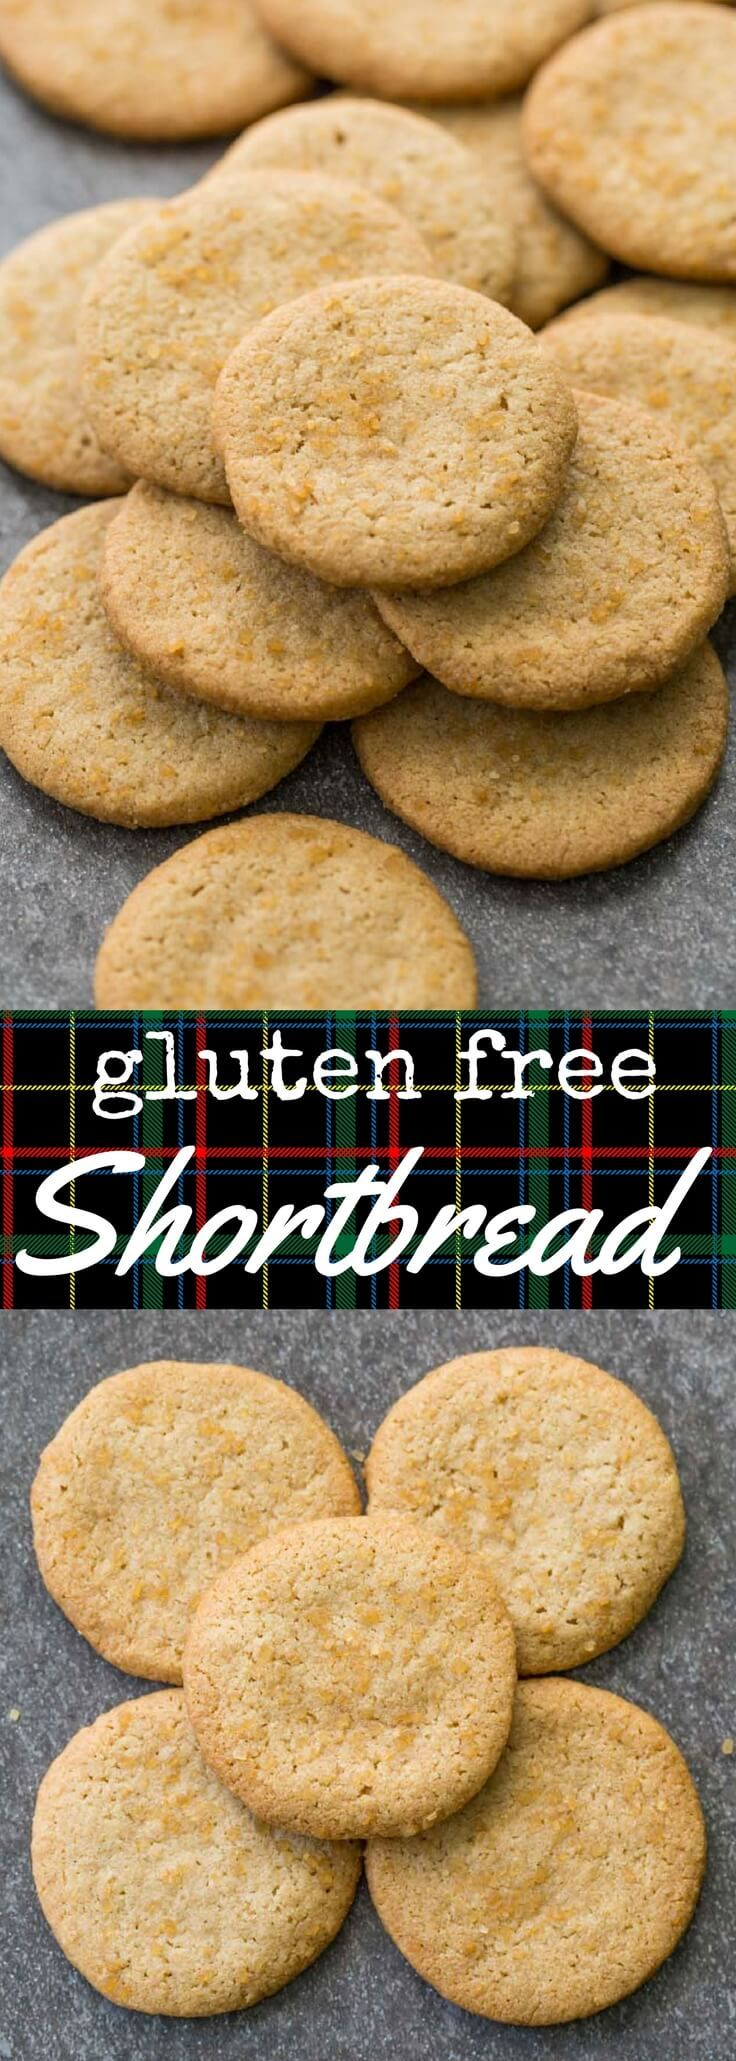 Traditional style gluten free shortbread made with only five ingredients: gluten free oat flour, butter, vanilla, sugar, and salt.  Pure and simple, with a perfect crunch and a tantalizingly buttery aroma. via @recipeforperfec sponsored by @bobsredmill #glutenfree #glutenfreerecipes #glutenfreebaking #glutenfreedesserts #shortbread #cookies